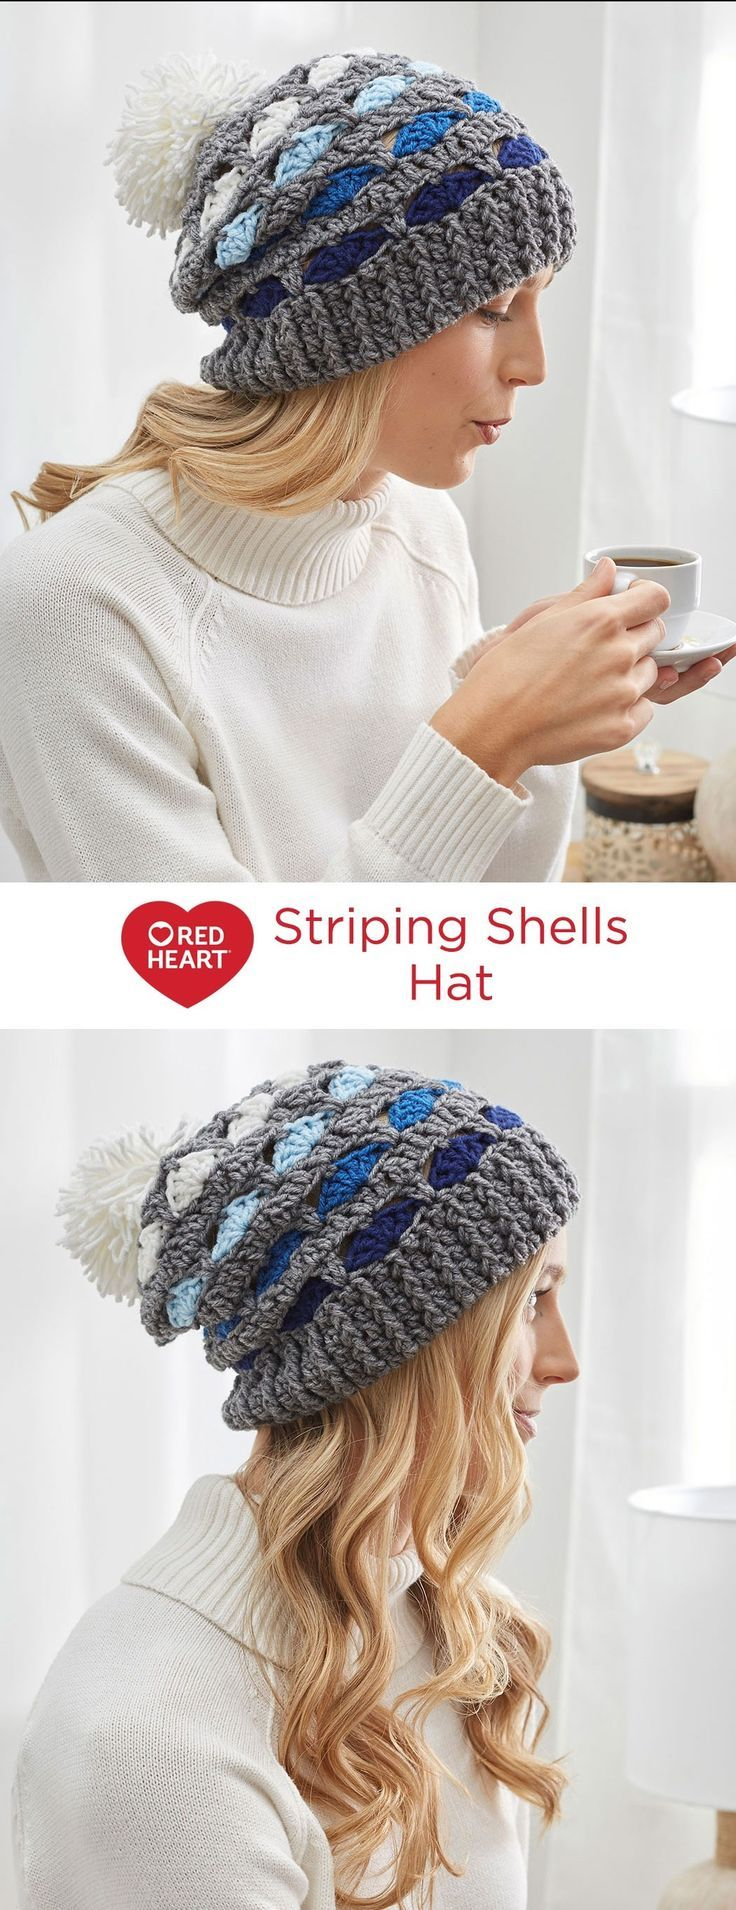 Striping Shells Hat Free Crochet Pattern in Red Heart Yarns -- This ...